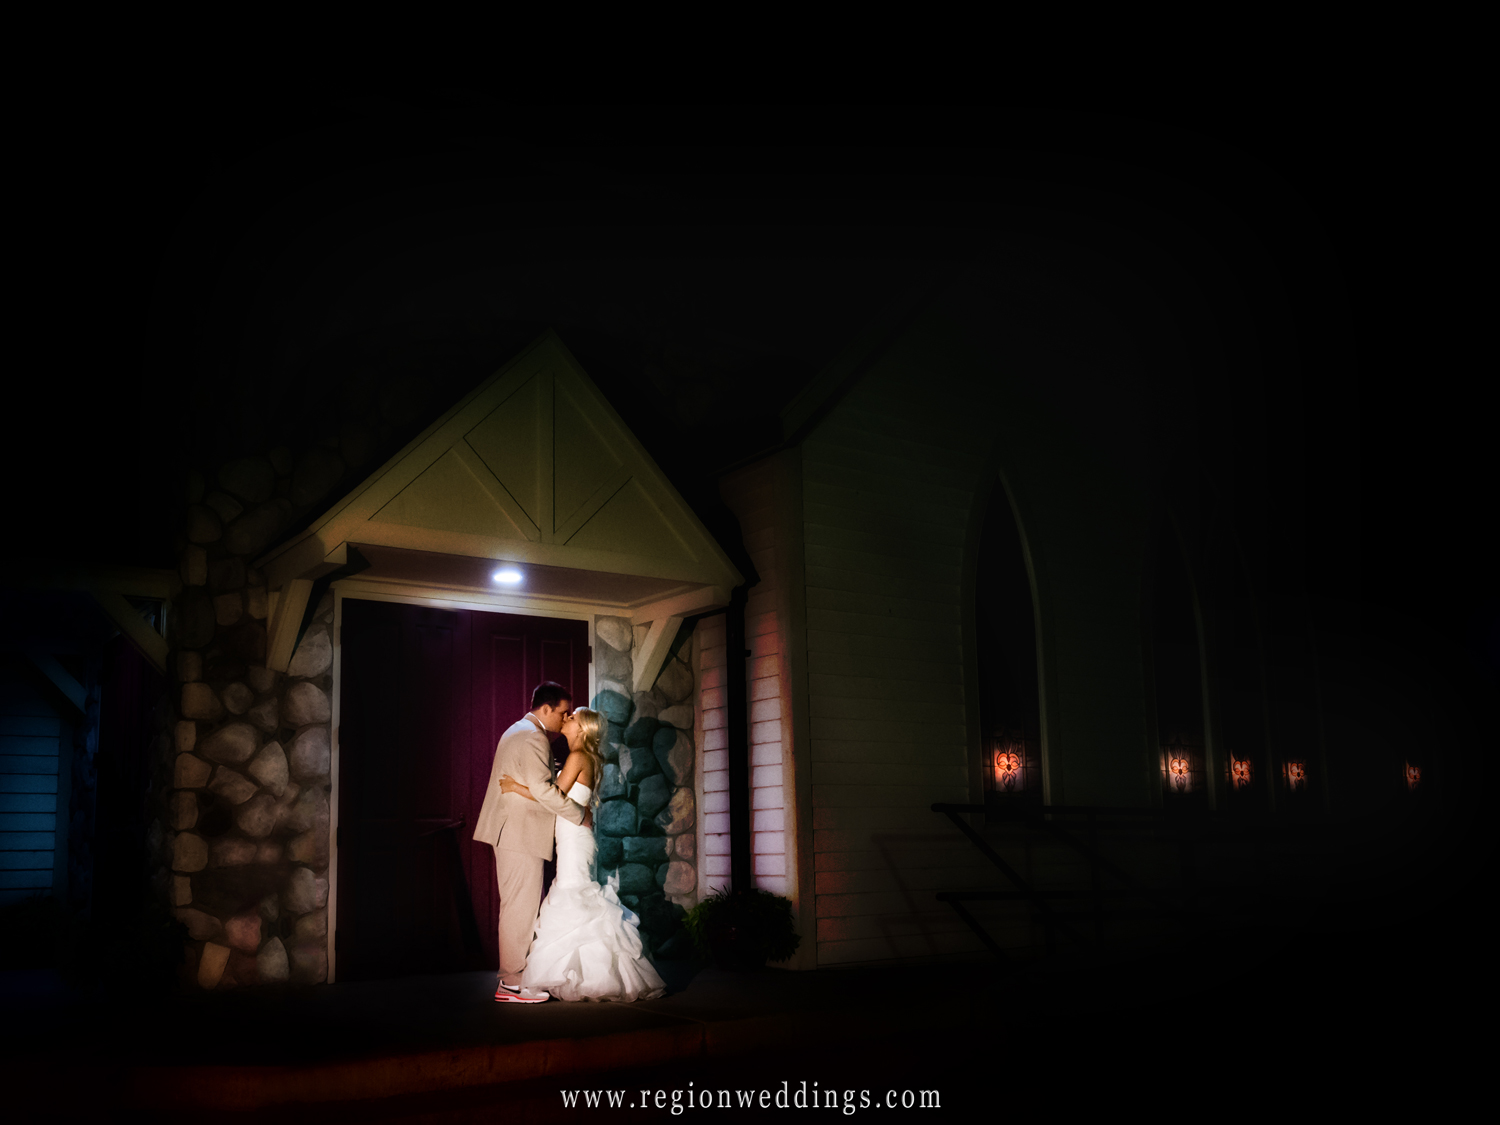 The bride and groom share a kiss underneath the evening stars in front of the Aberdeen chapel in Valparaiso, Indiana.